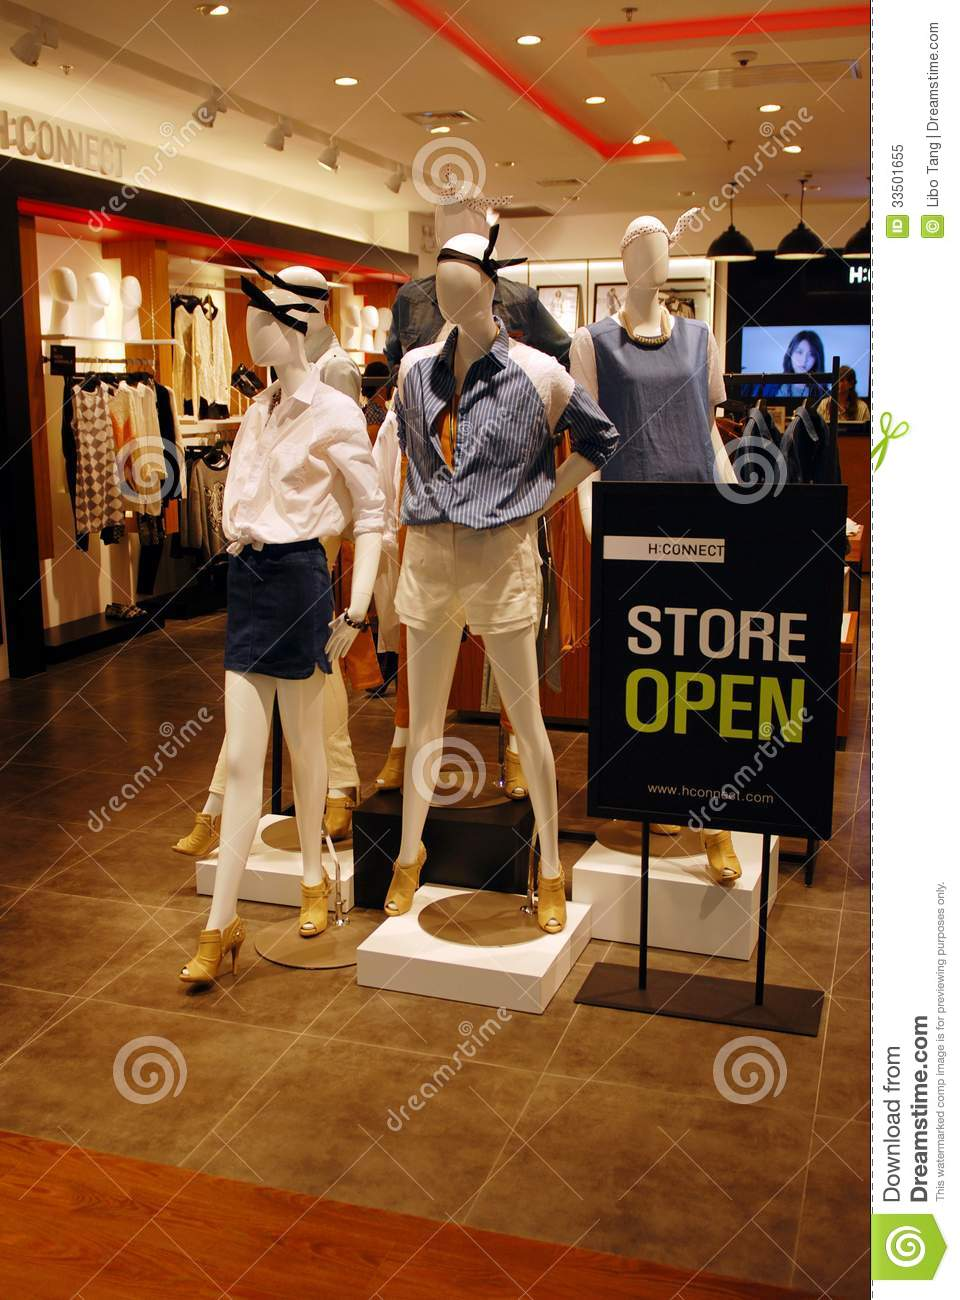 A good example of this is a clothing store, which in today's world of hour shopping, is easiest to do on the Internet. Starting a clothing store online simply requires the inventory to sell and some business and marketing savvy.